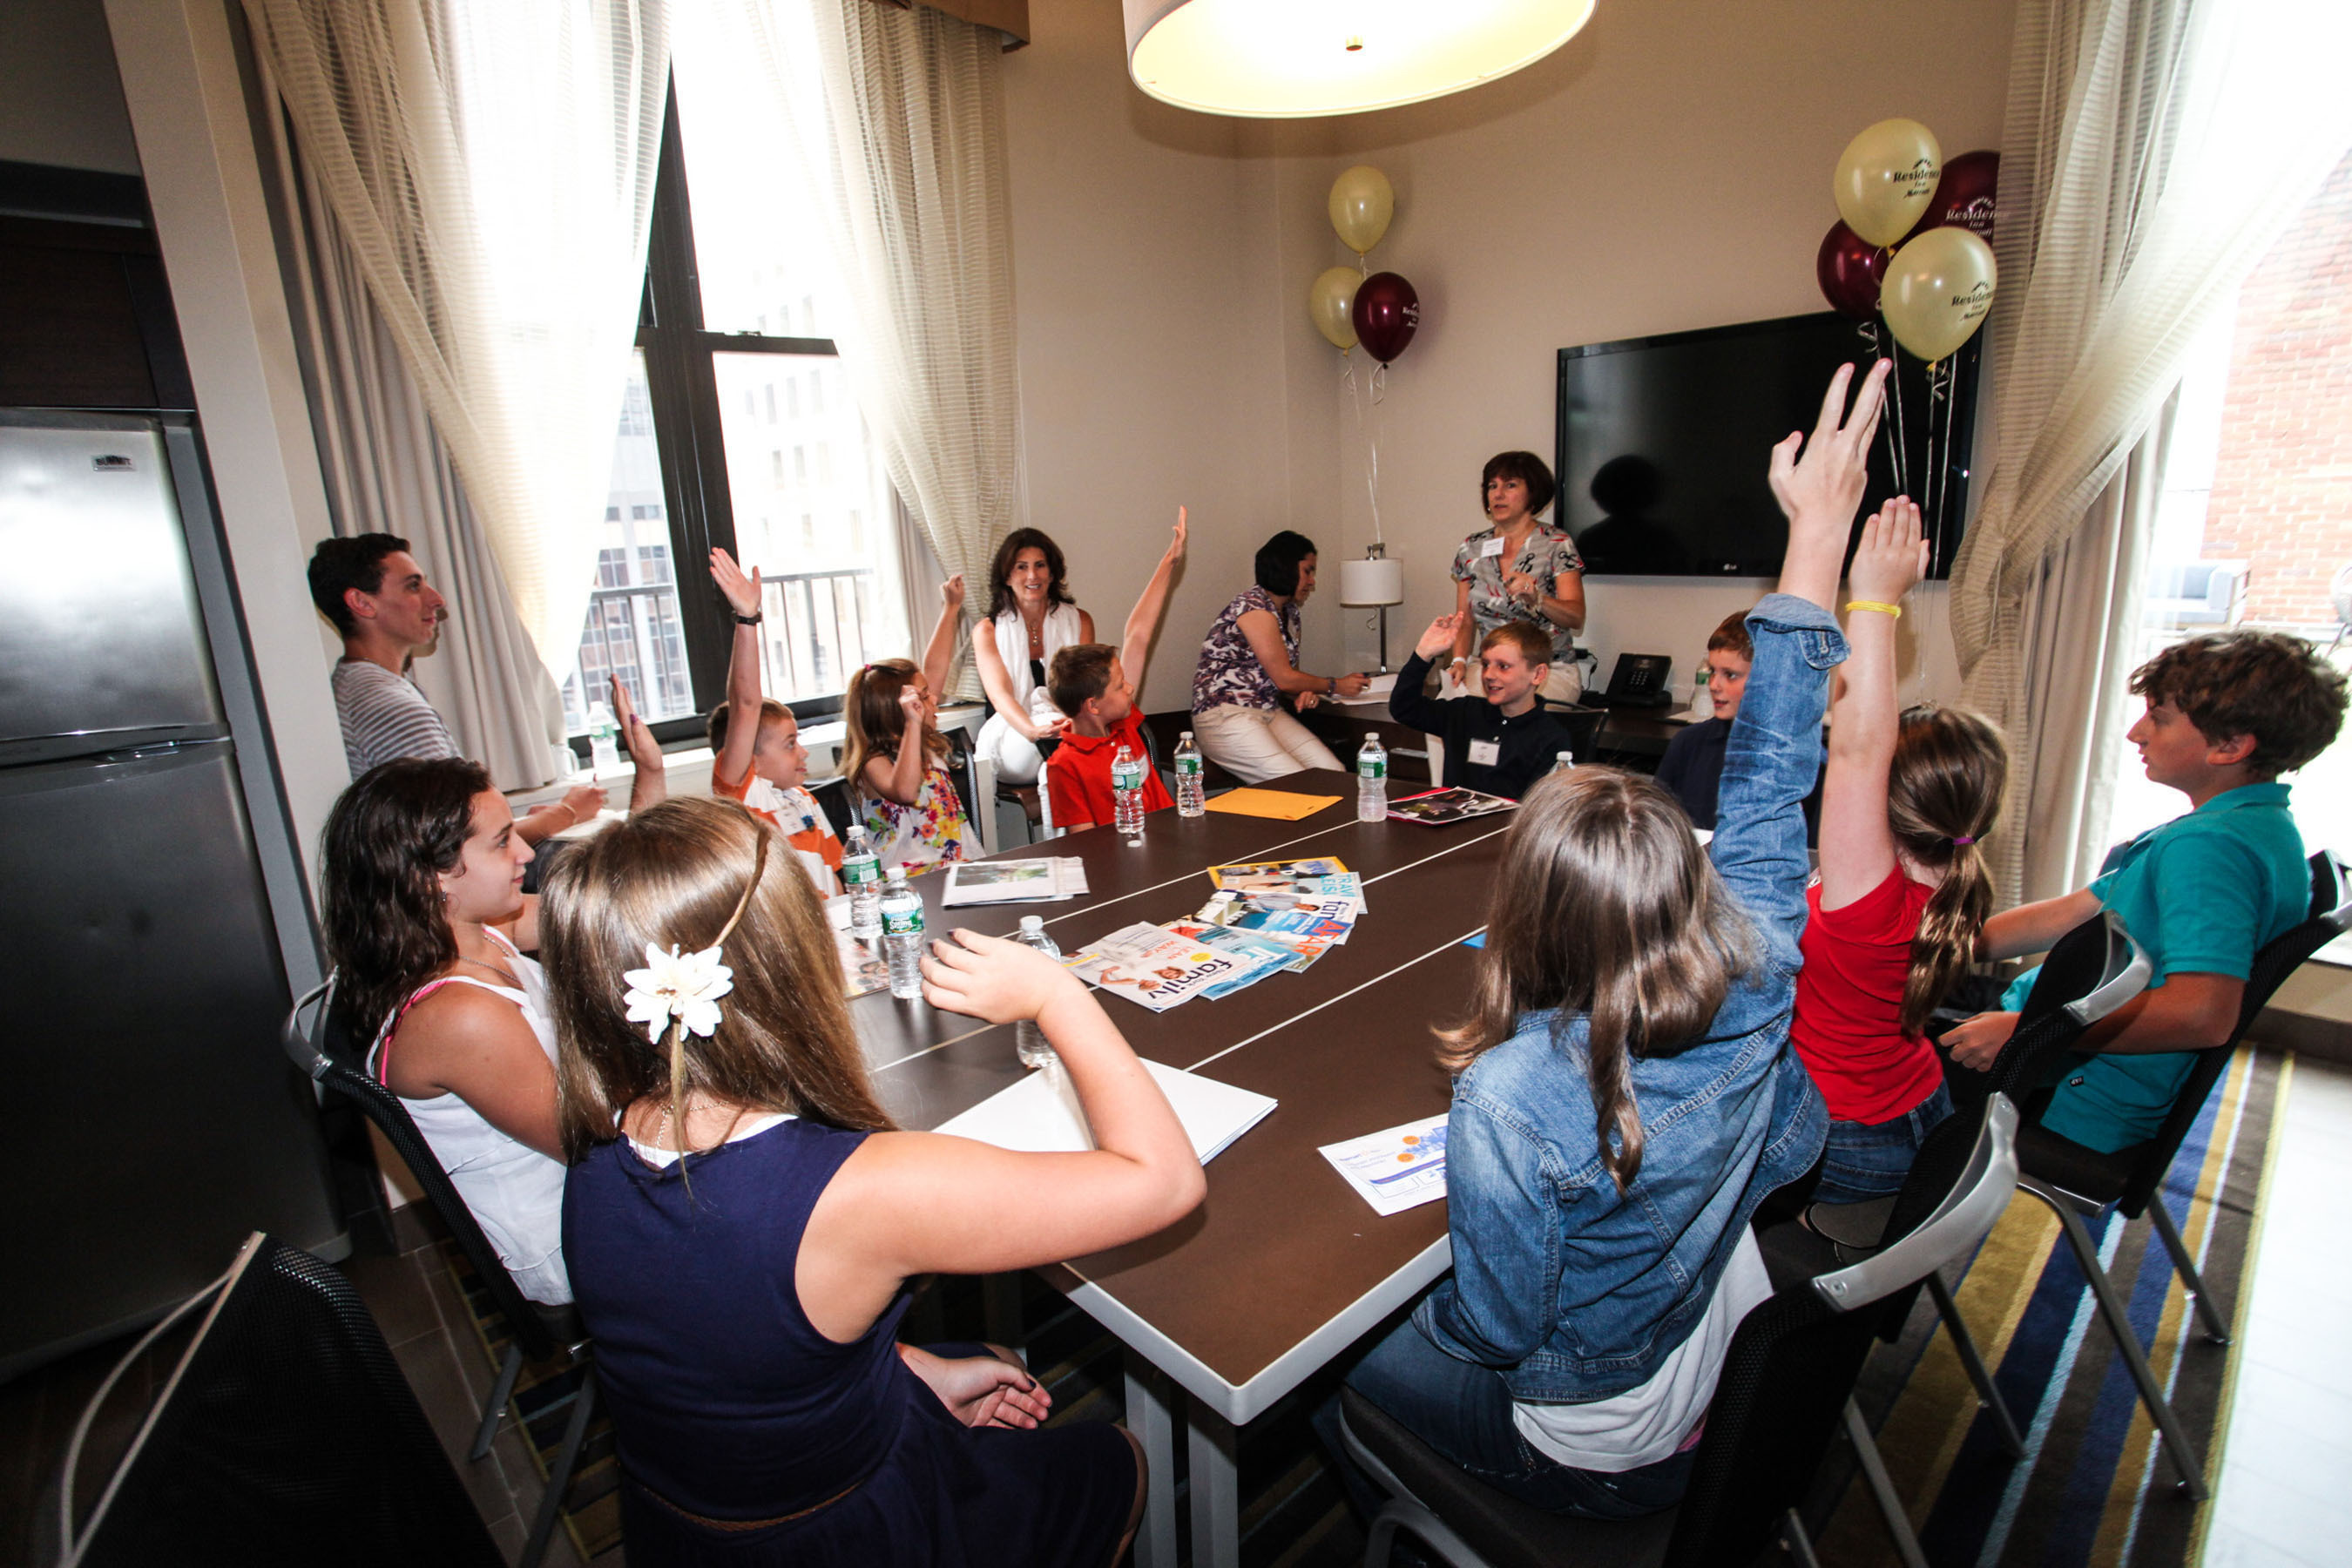 Residence Inn hosted the first-ever Kids Roundtable on Travel on August 3.  (PRNewsFoto/Residence Inn by Marriott)